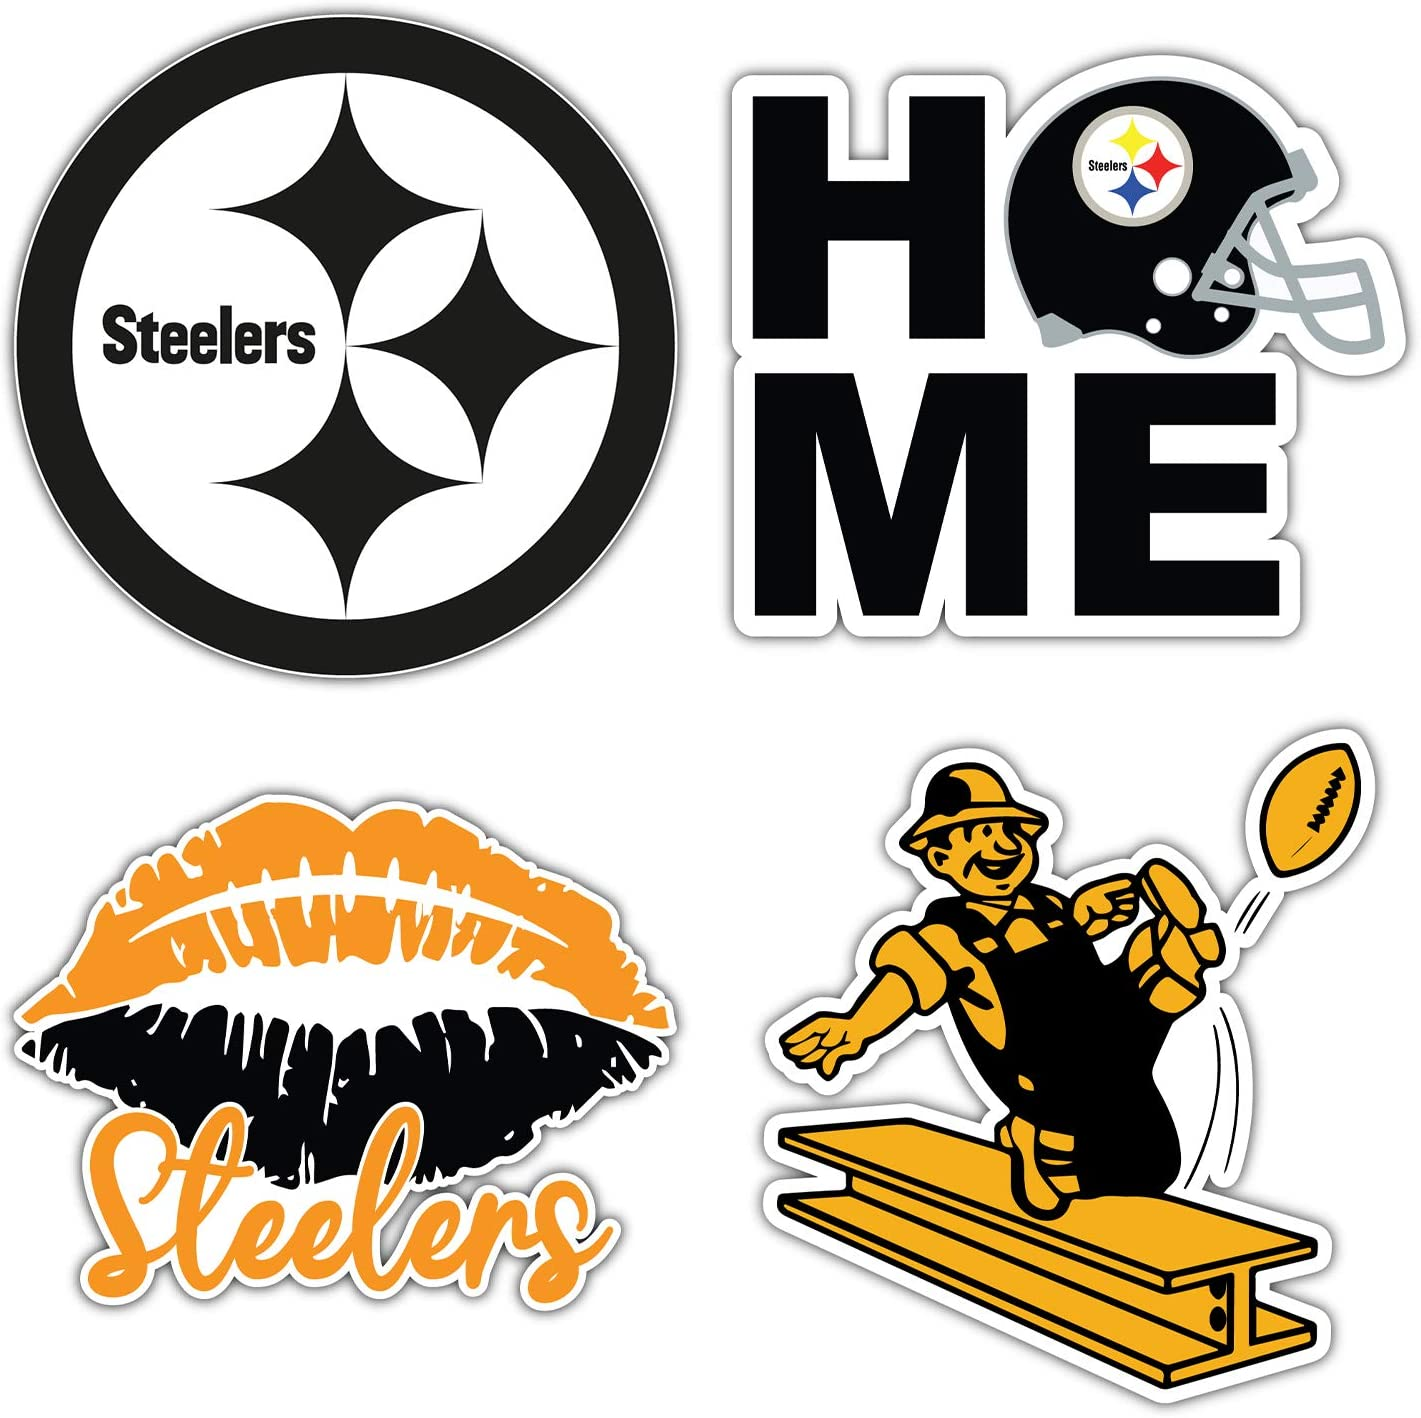 qualityprint Pittsburgh Steelers Set of 4 NFL Football Car Bumper Stickers Decals 5 Longer Side